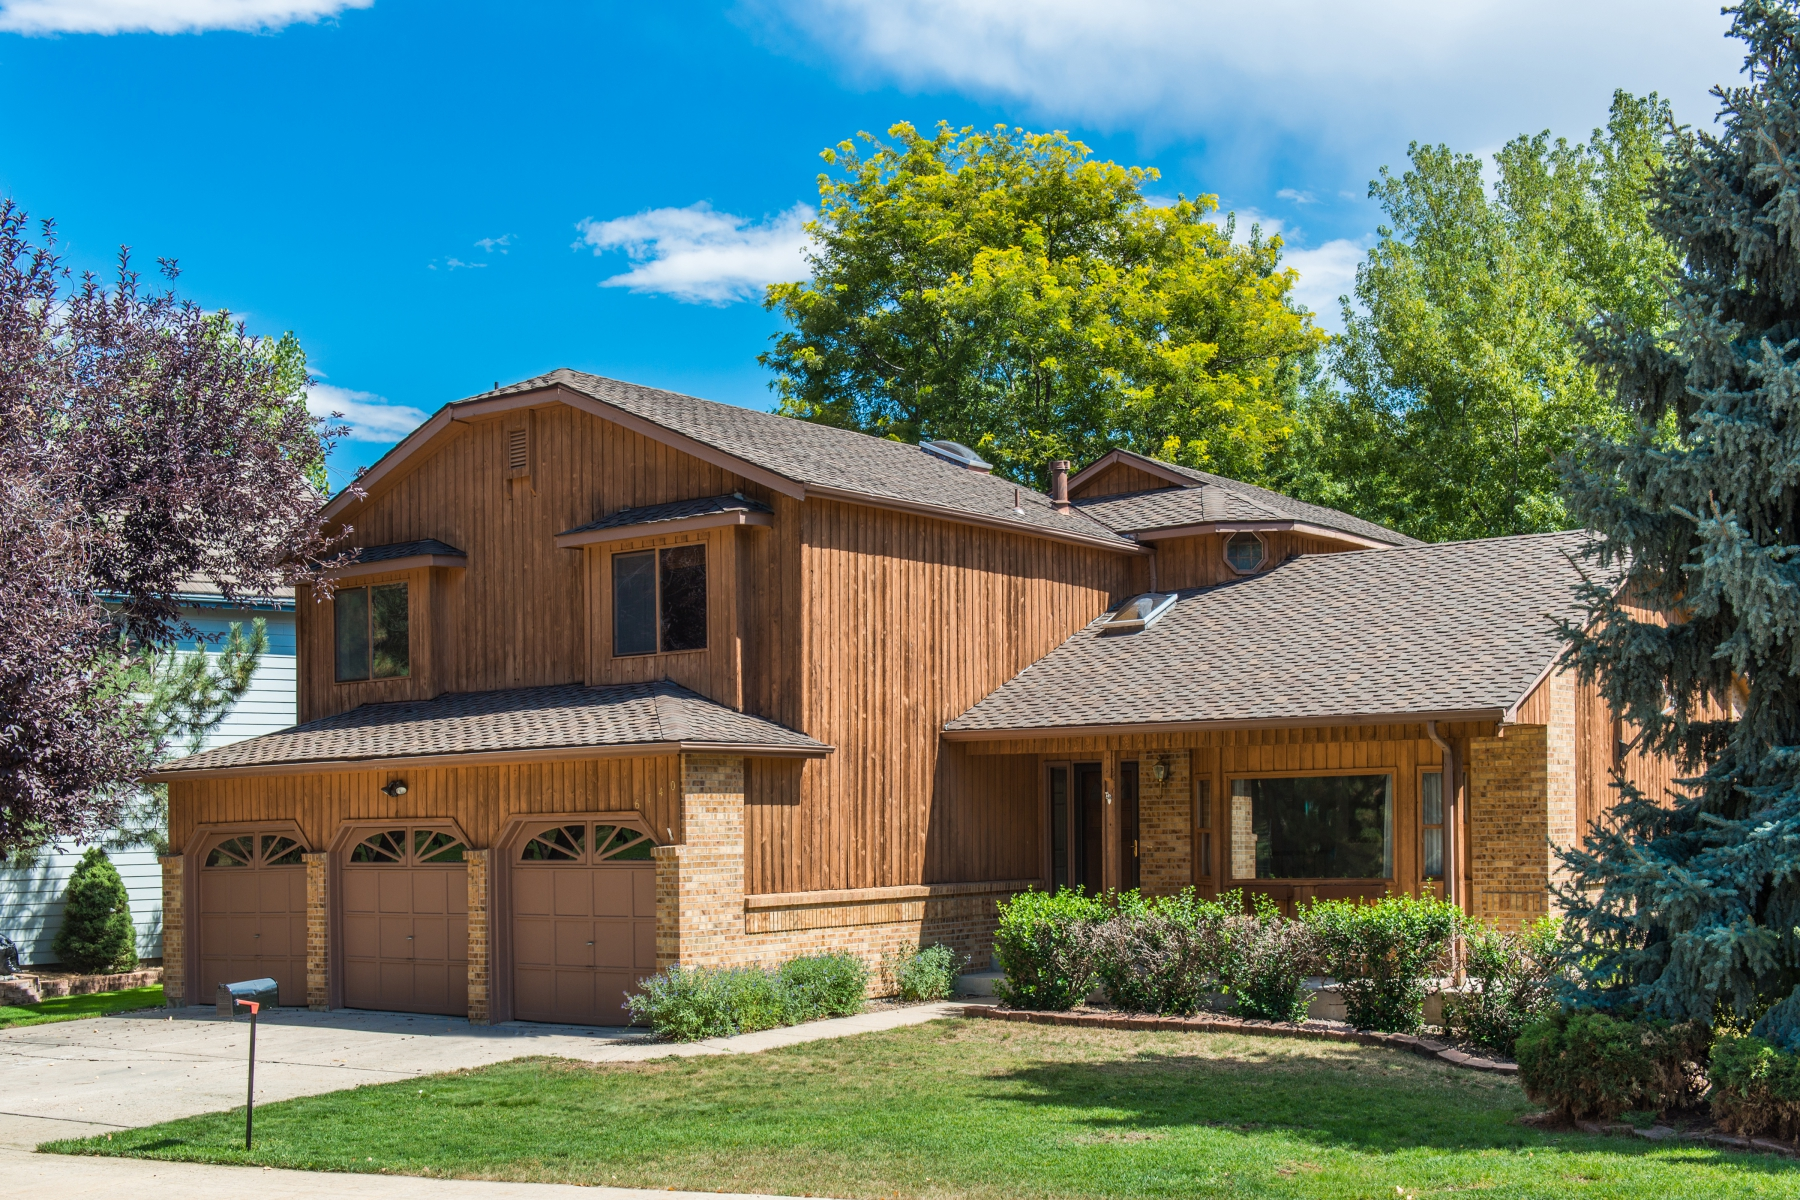 Single Family Home for Sale at Backs to Private Open Space 6140 W Vassar Way Lakewood, Colorado 80227 United States